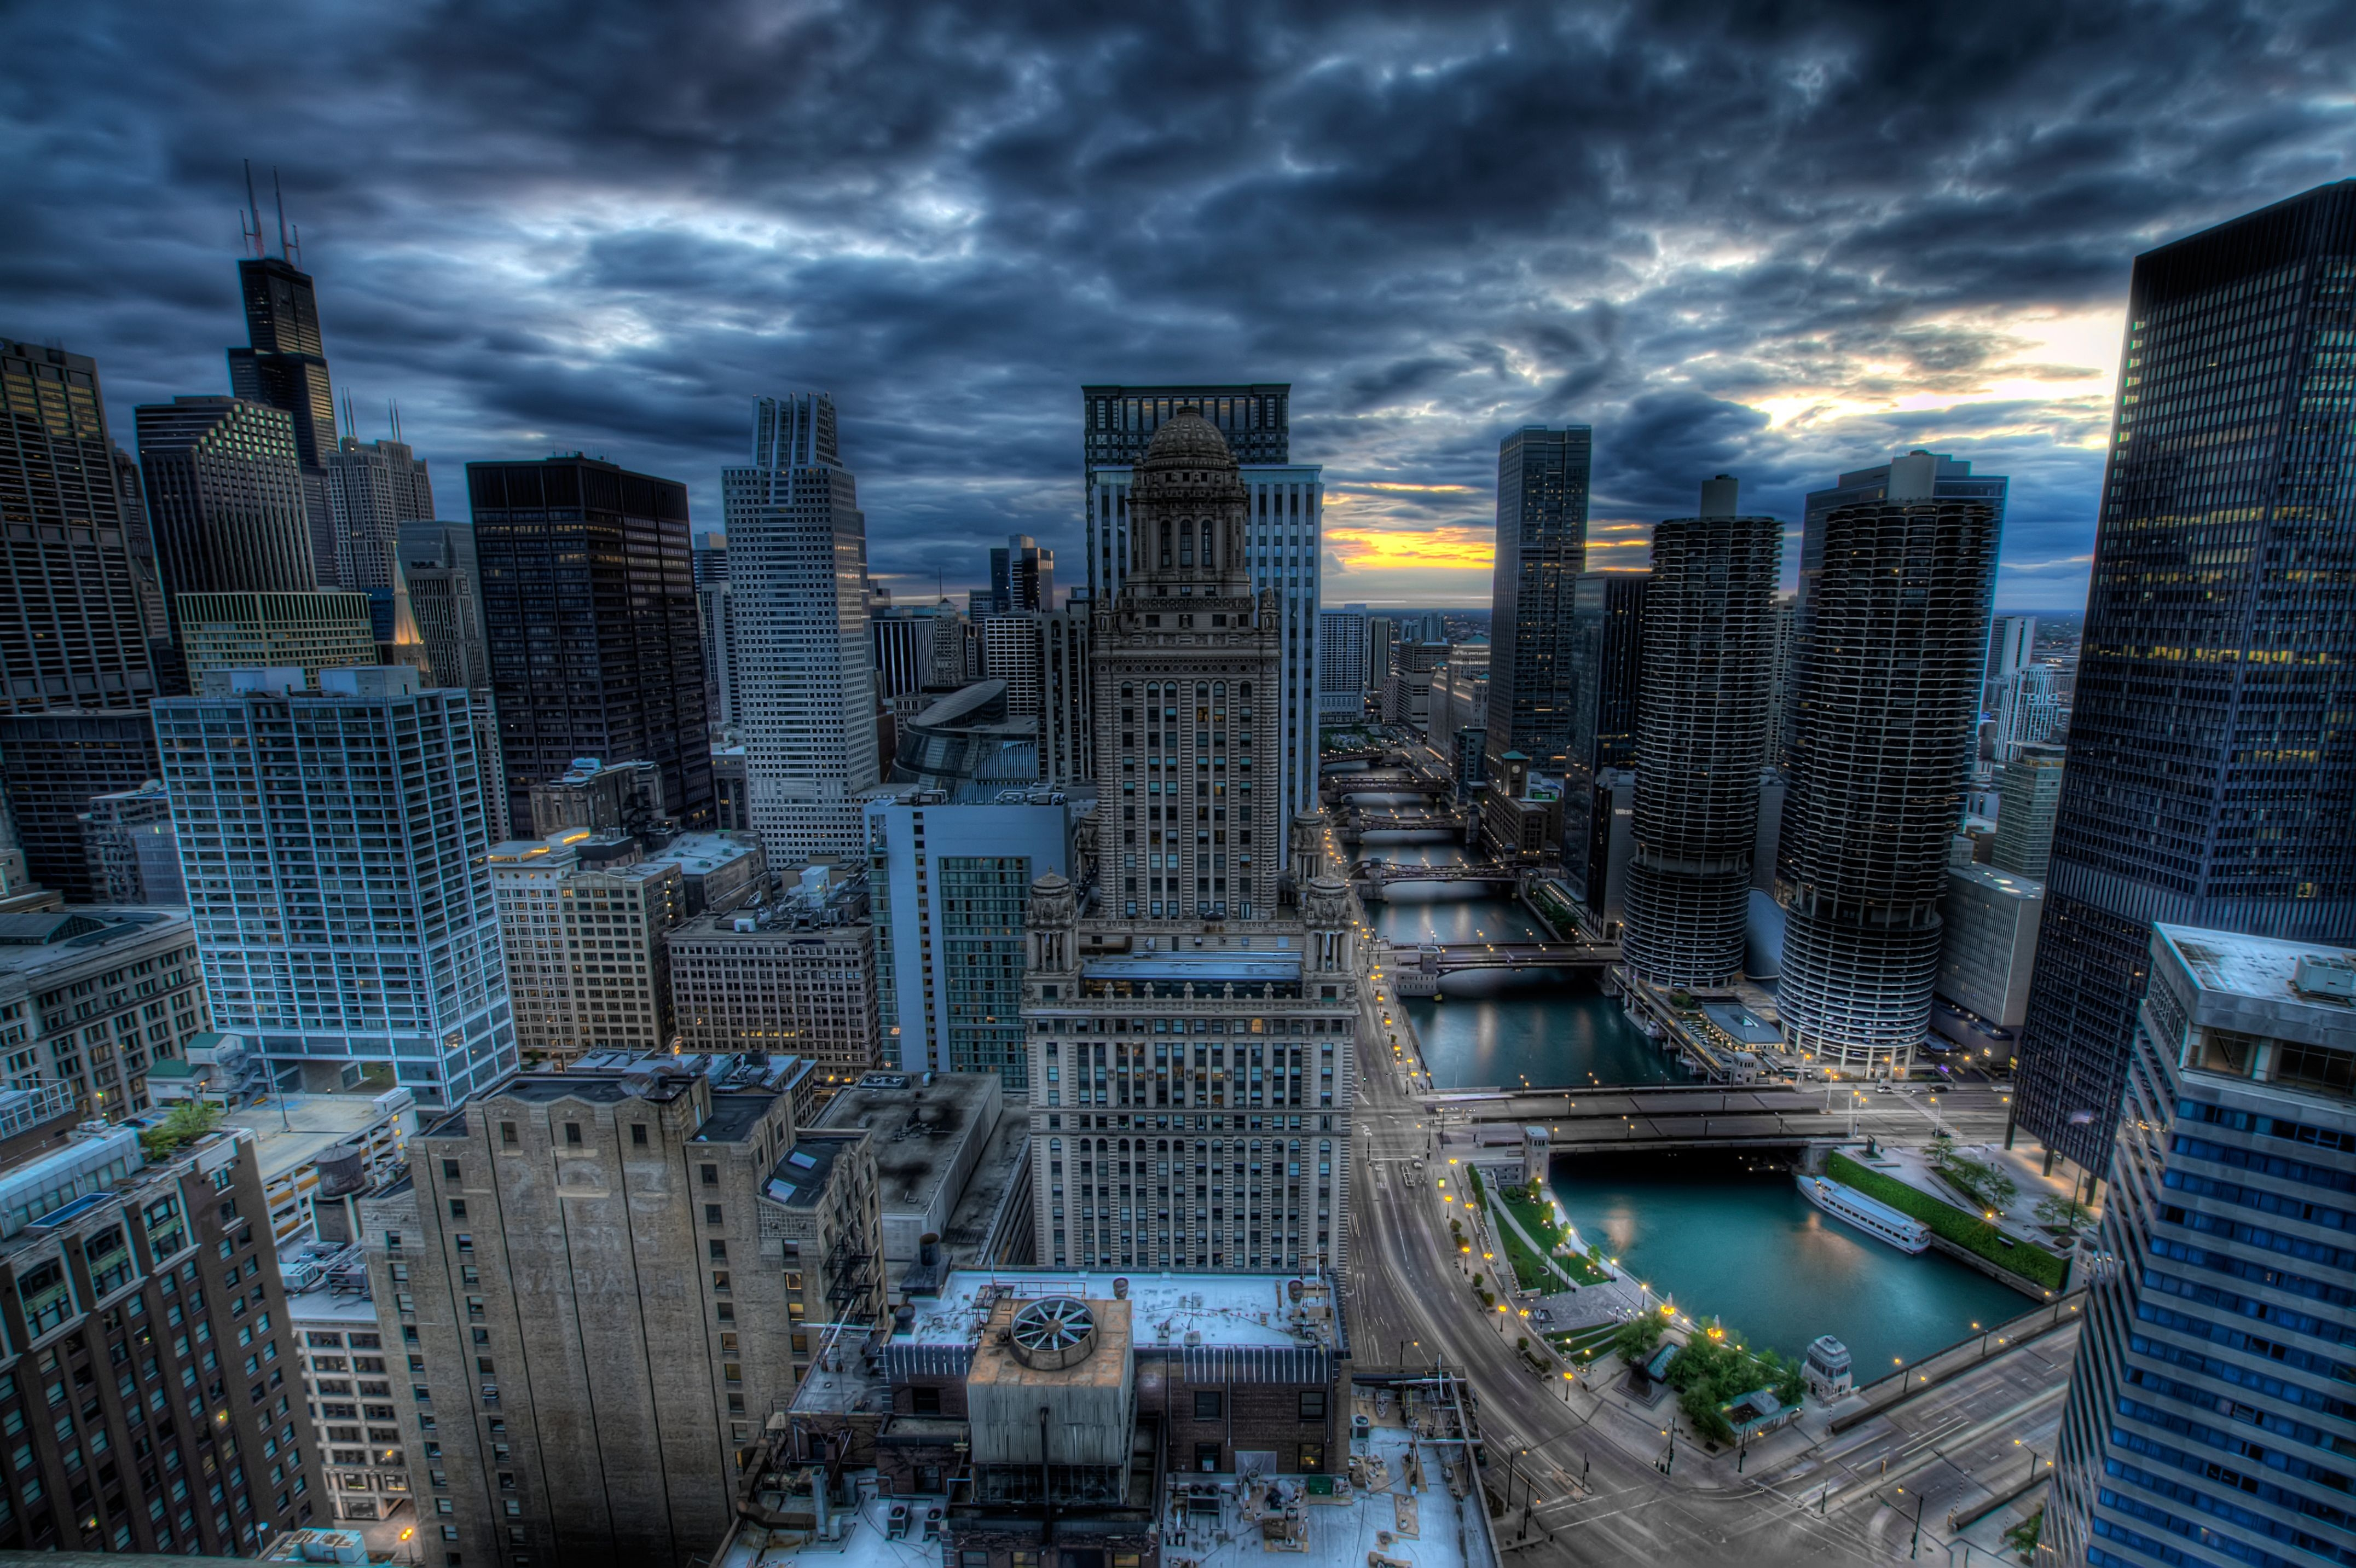 129247 download wallpaper Cities, Rivers, Bridges, Building, Skyscrapers, Hdr, Chicago screensavers and pictures for free